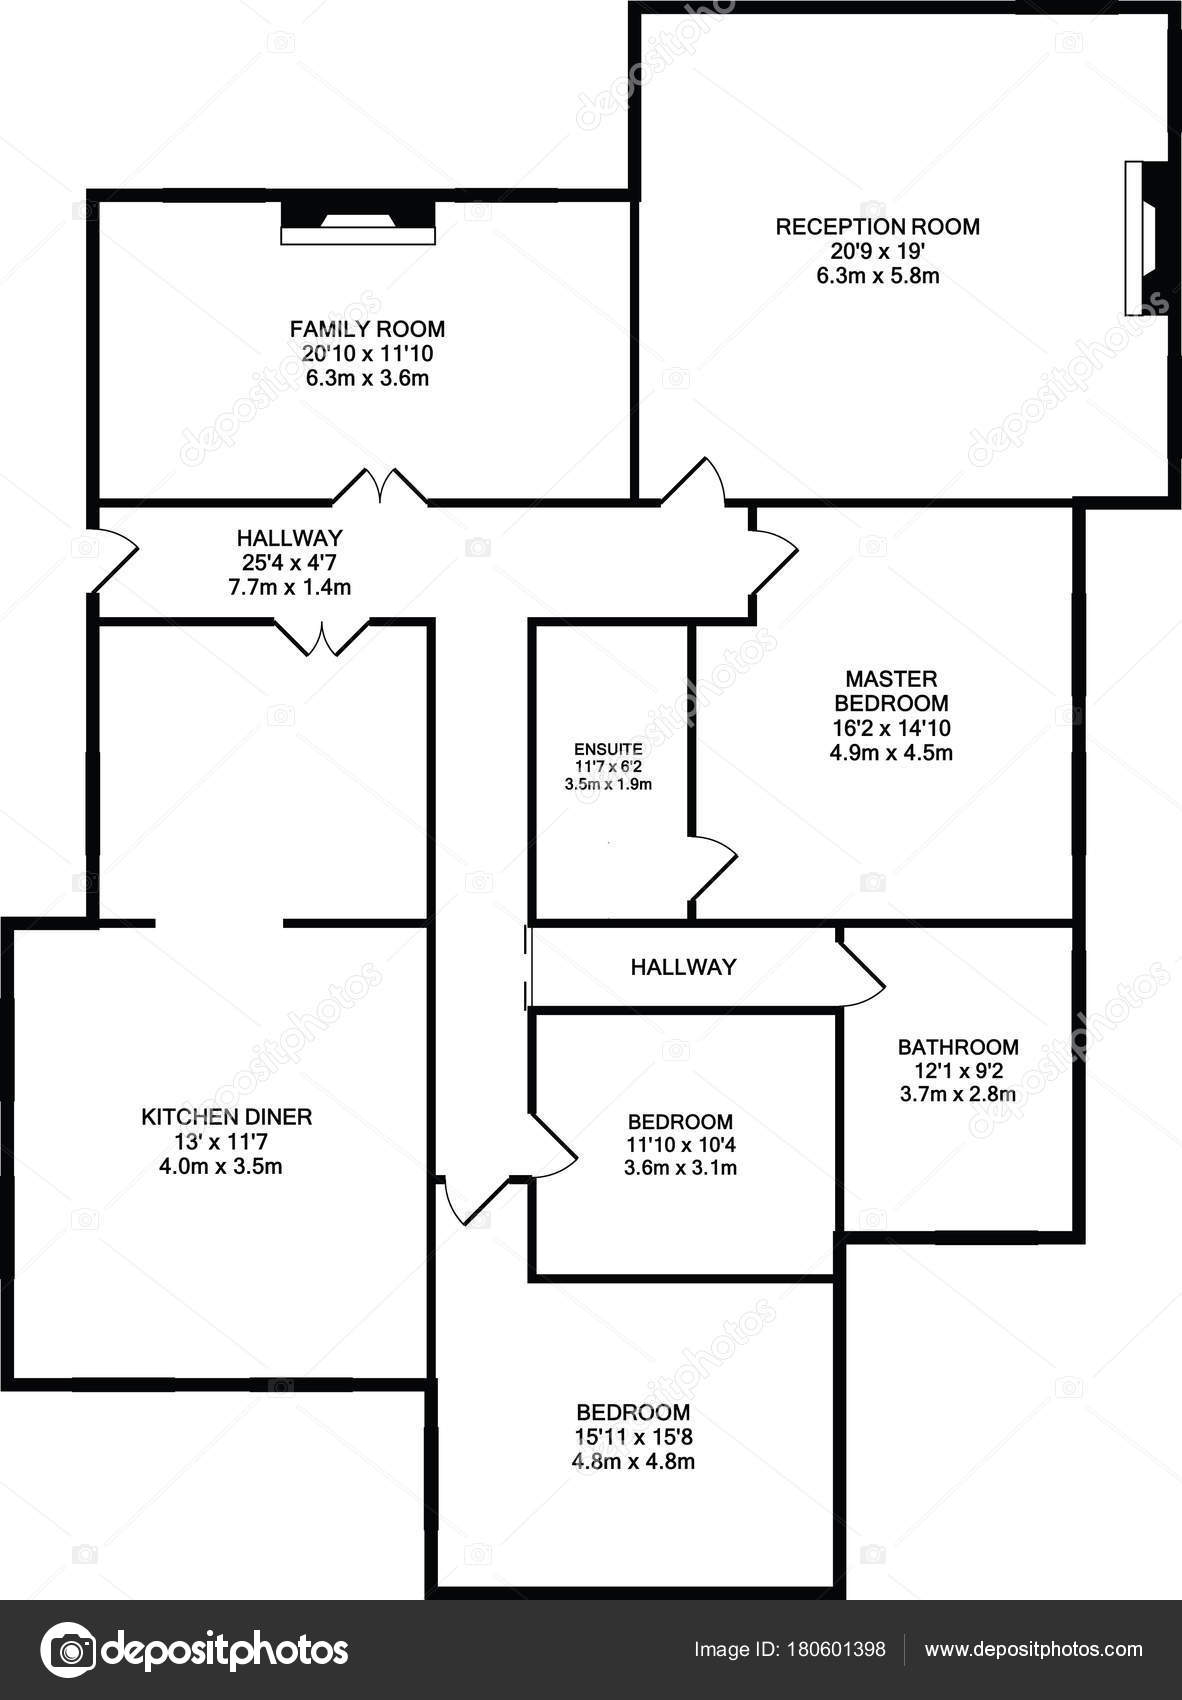 Single Storey House Floor Plan Typical One Storey Apartment Or